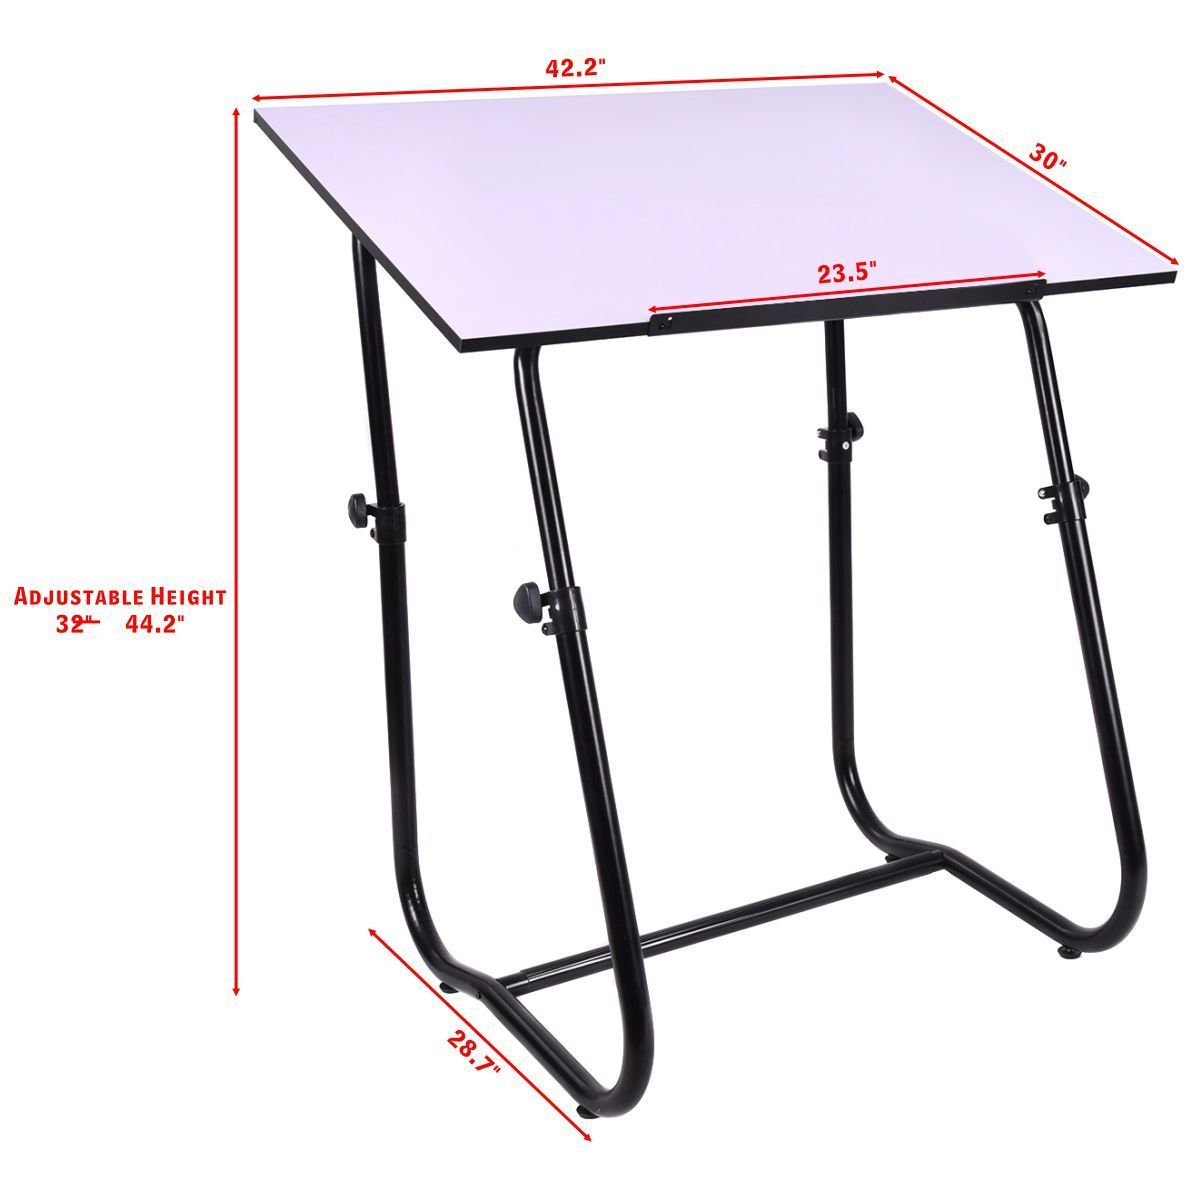 Adjustable Height Drafting Table Us 69 99 Giantex Drawing Desk Portable Drafting Table Adjustable Art Craft Workstation Hobby White Modern Study Furniture Hw52824 In Console Tables